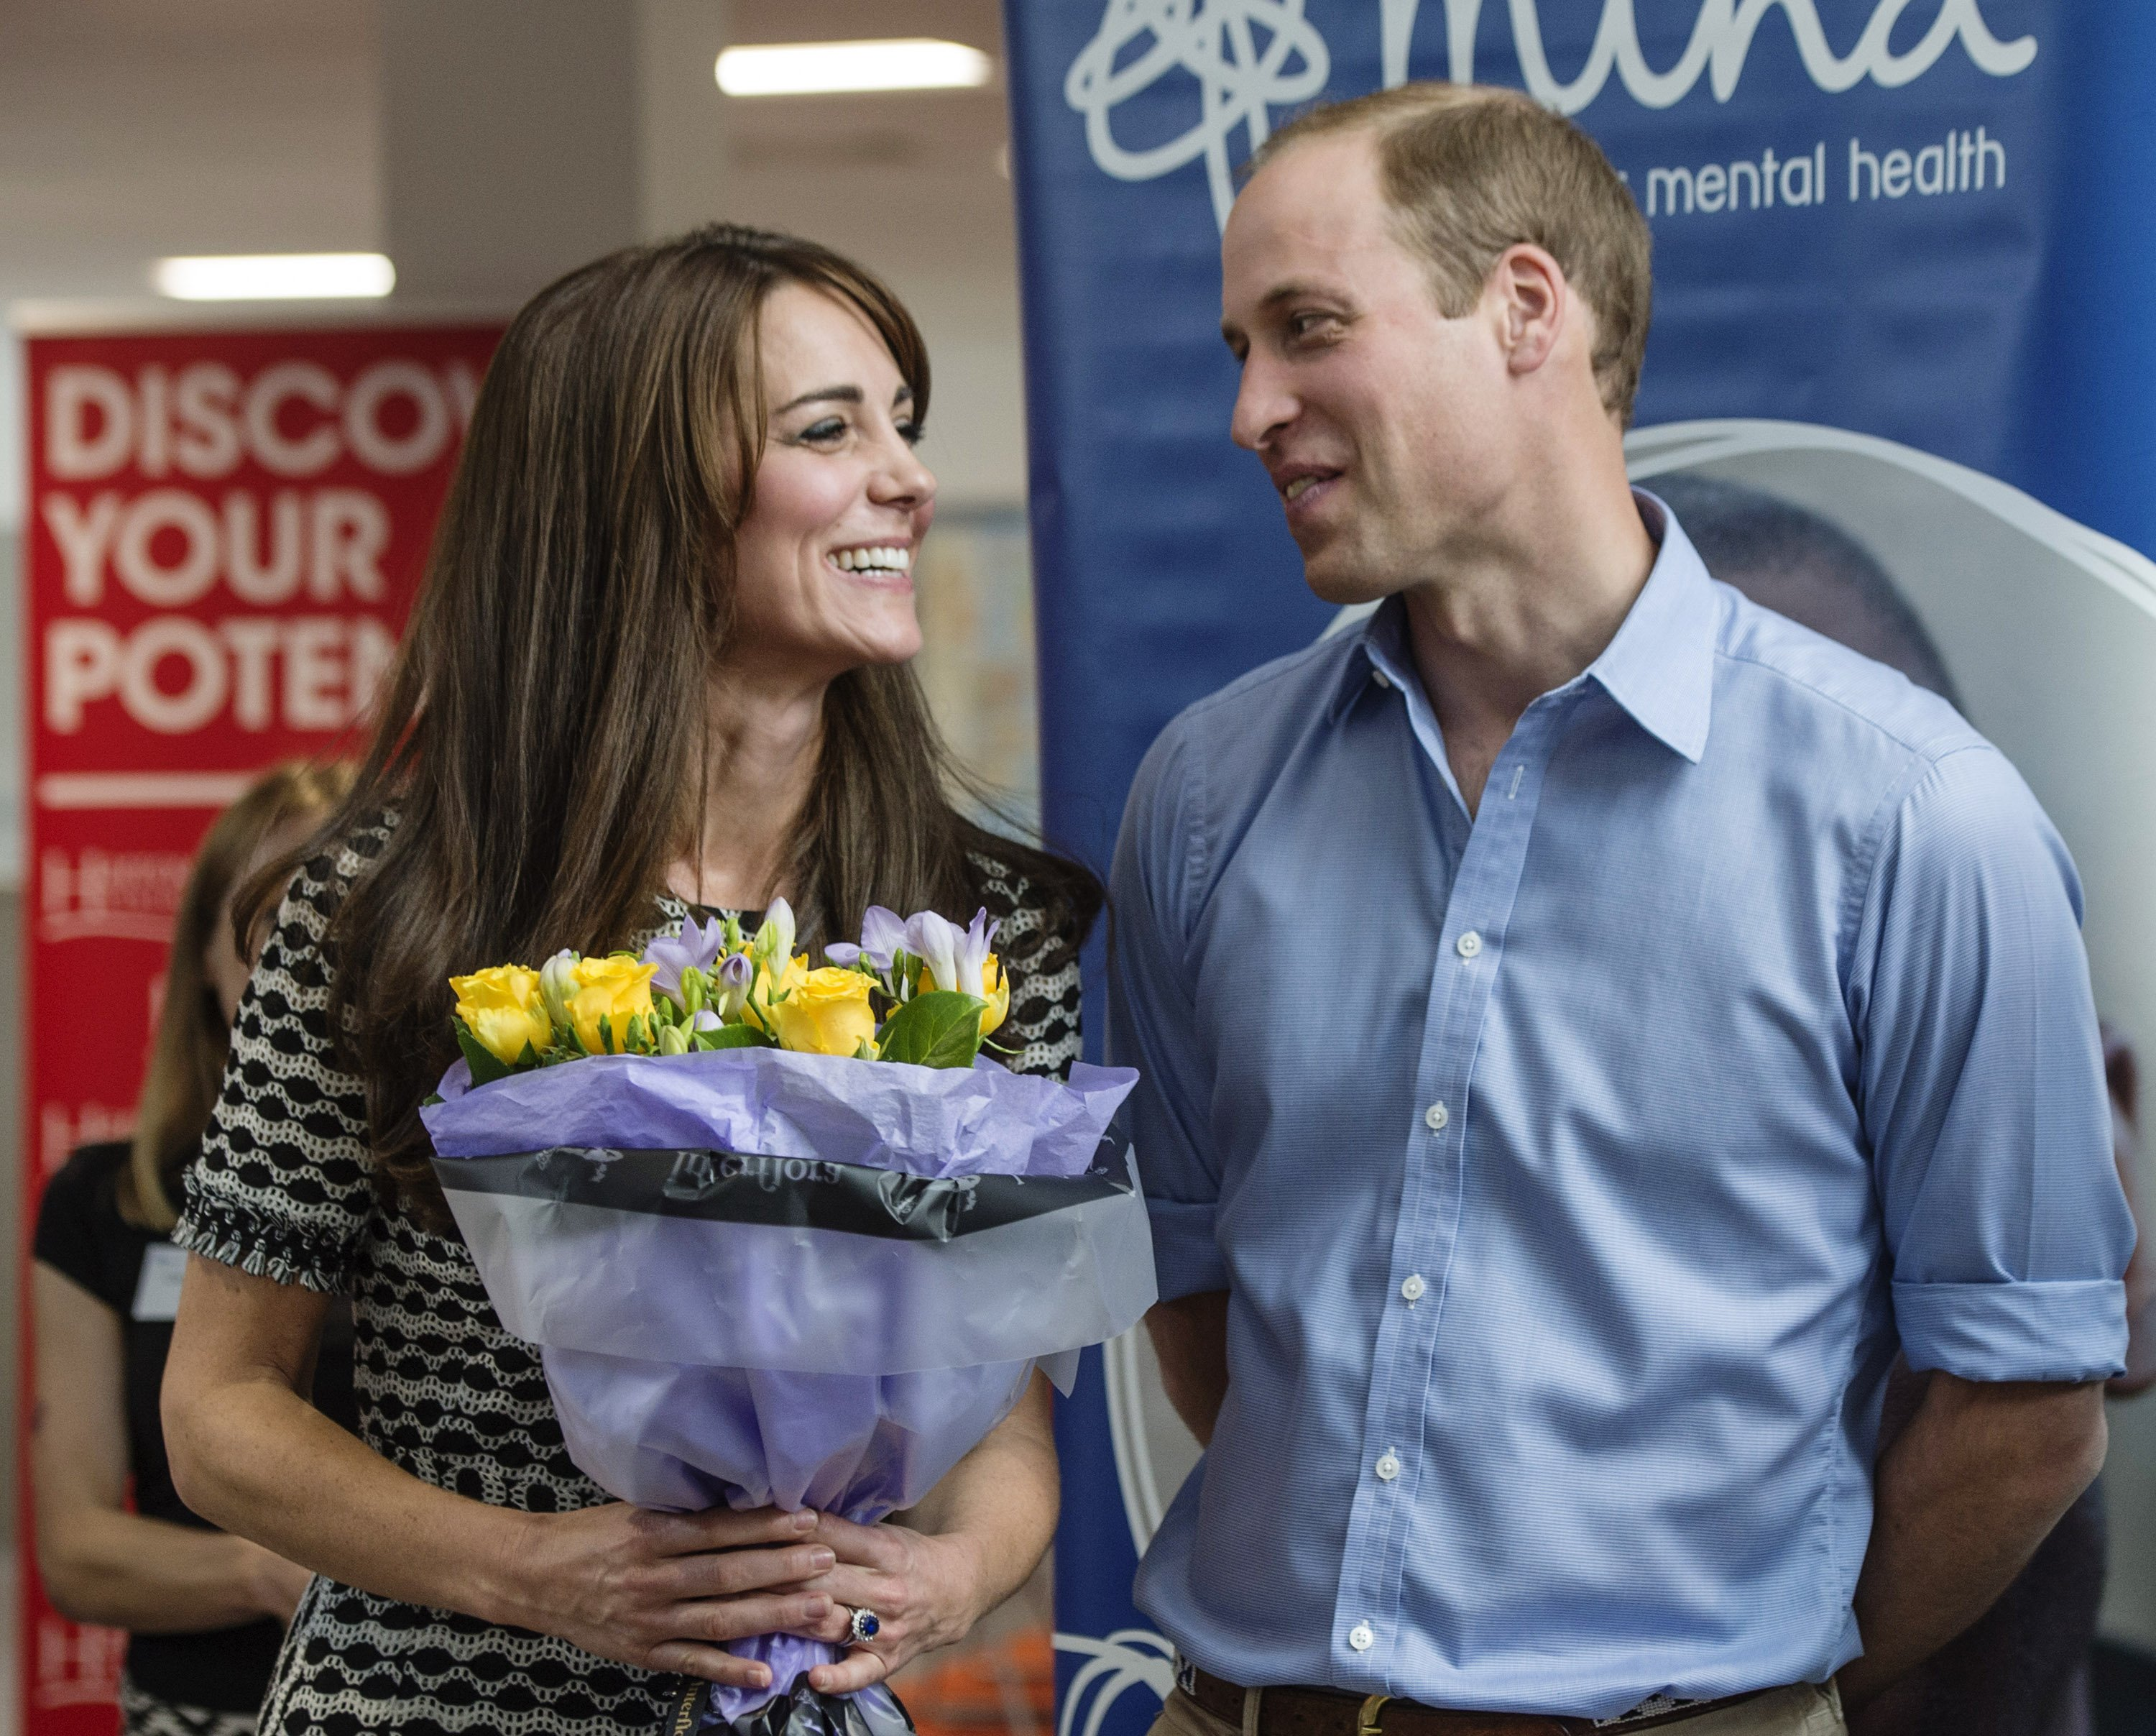 Duke of Cambridge and Catherine, and Duchess of Cambridge attend an event hosted by Mind, at Harrow College | Source: Getty Images